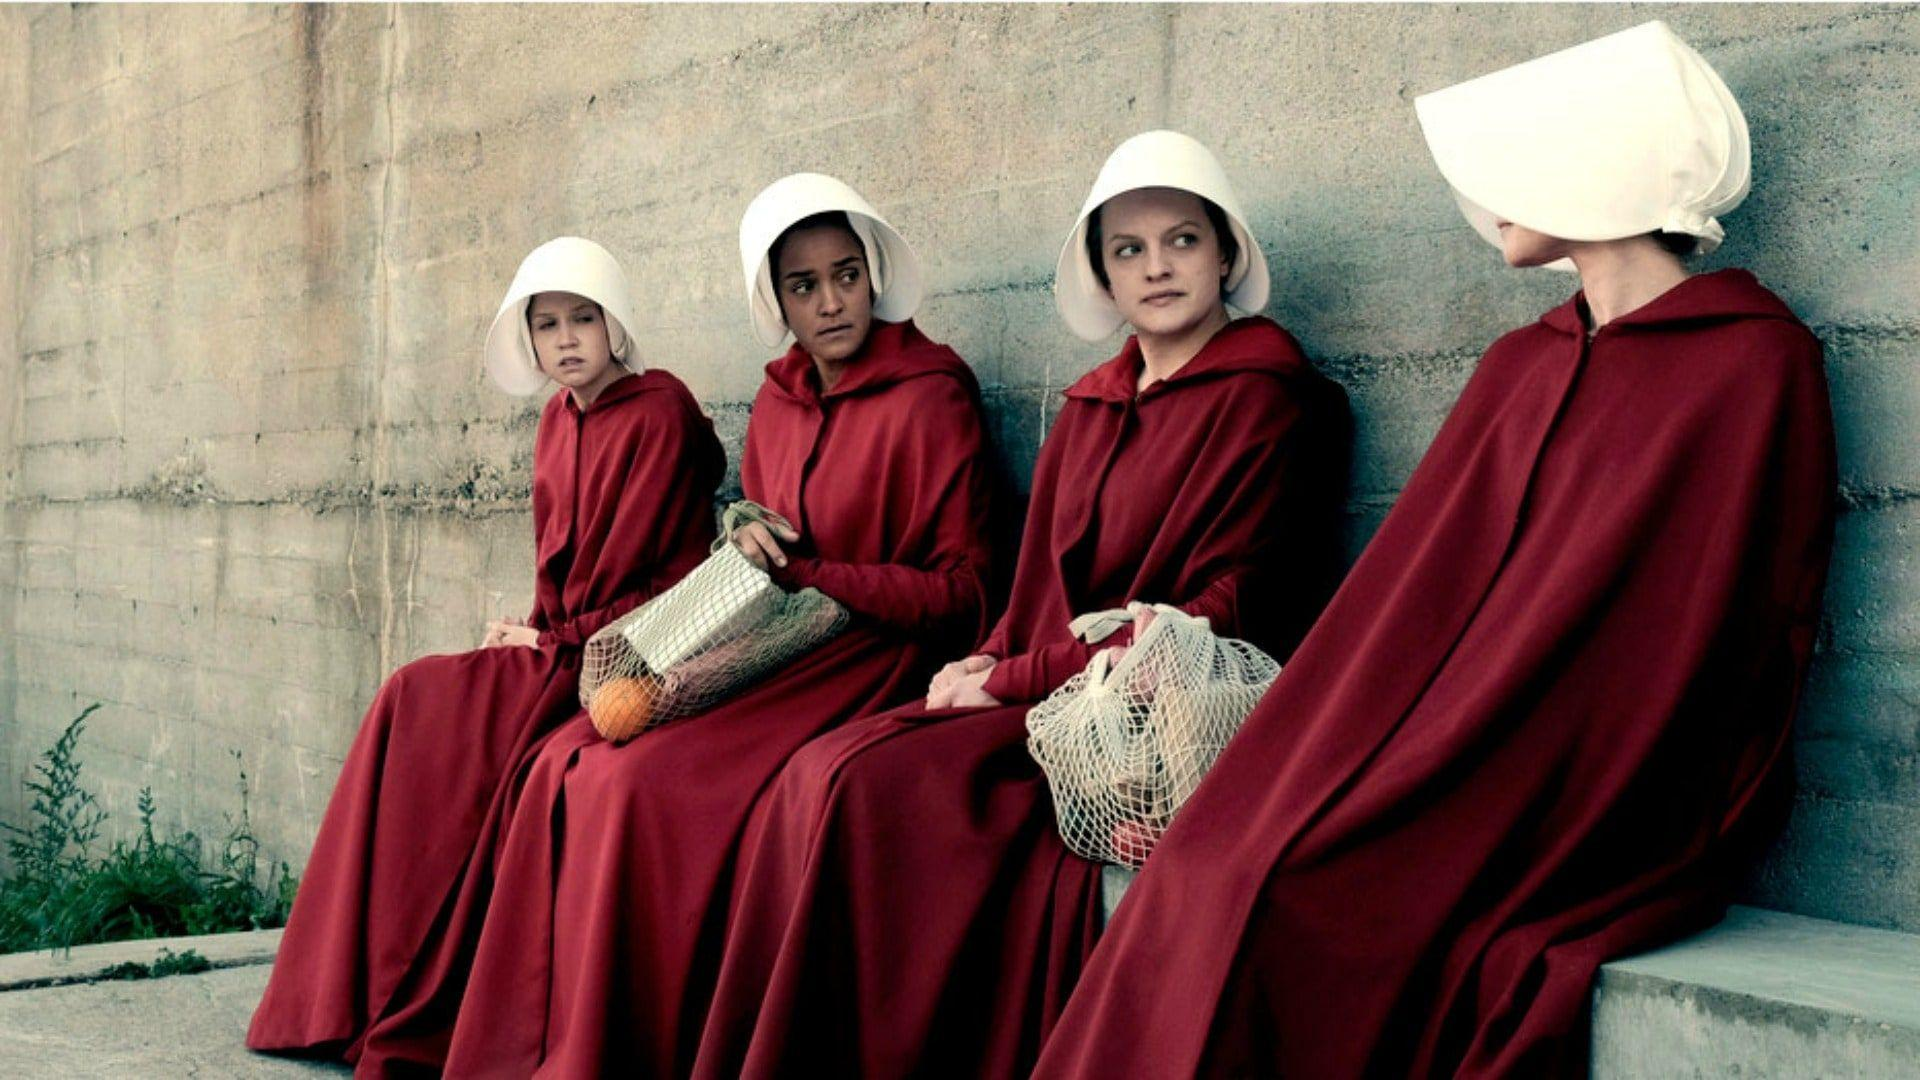 The Handmaid's Tale Season 2 Trailer Is Here, & It's Lit